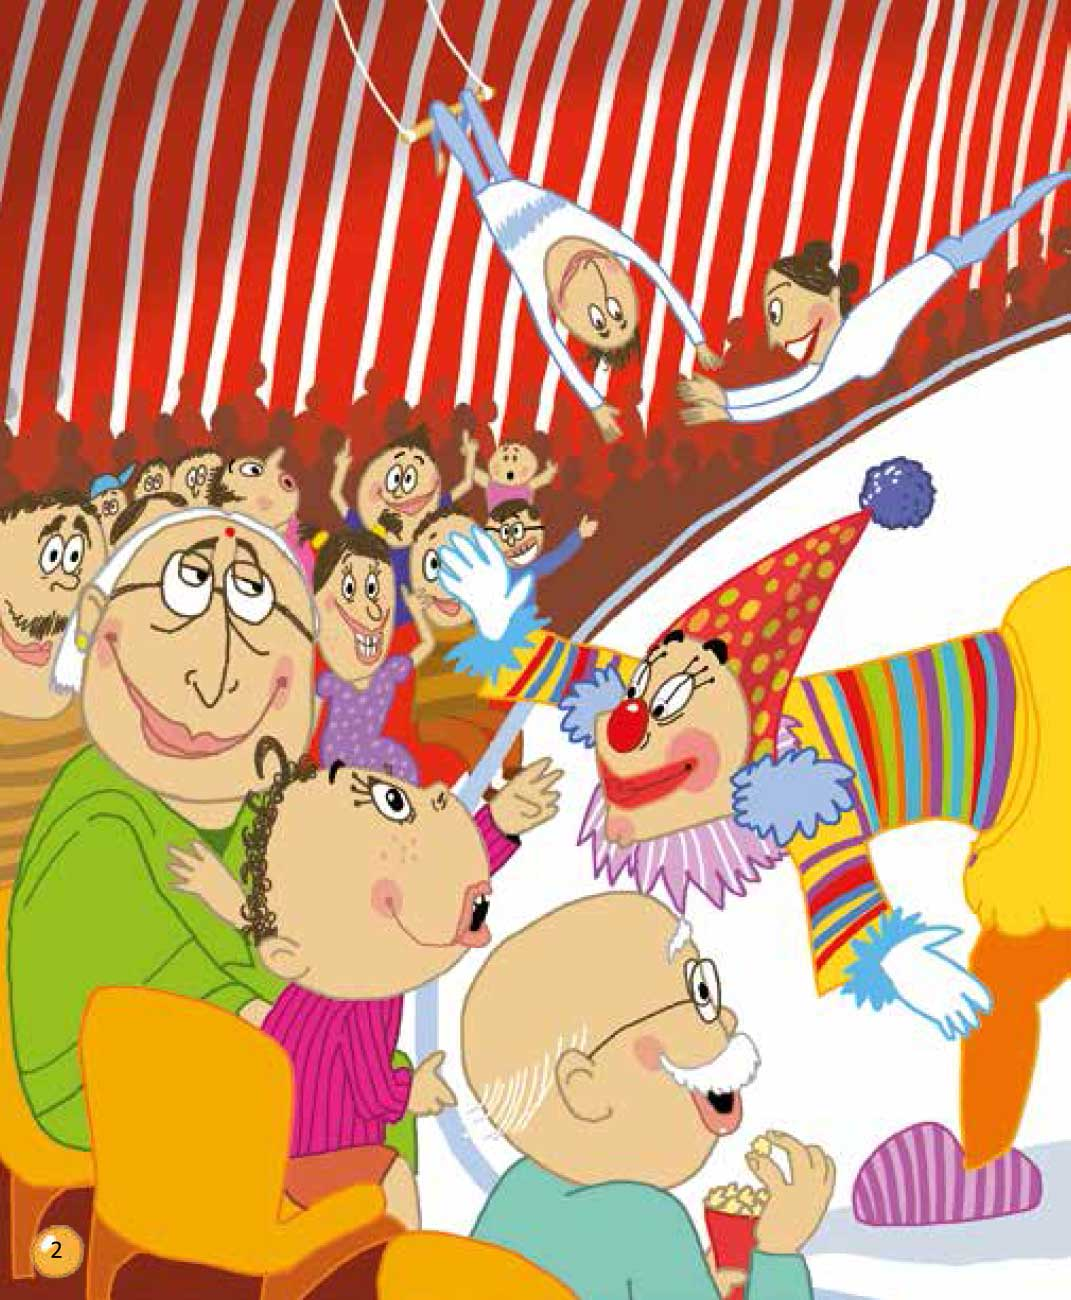 Bedtime stories 'Veeru Goes to the Circus' free picture book page 2